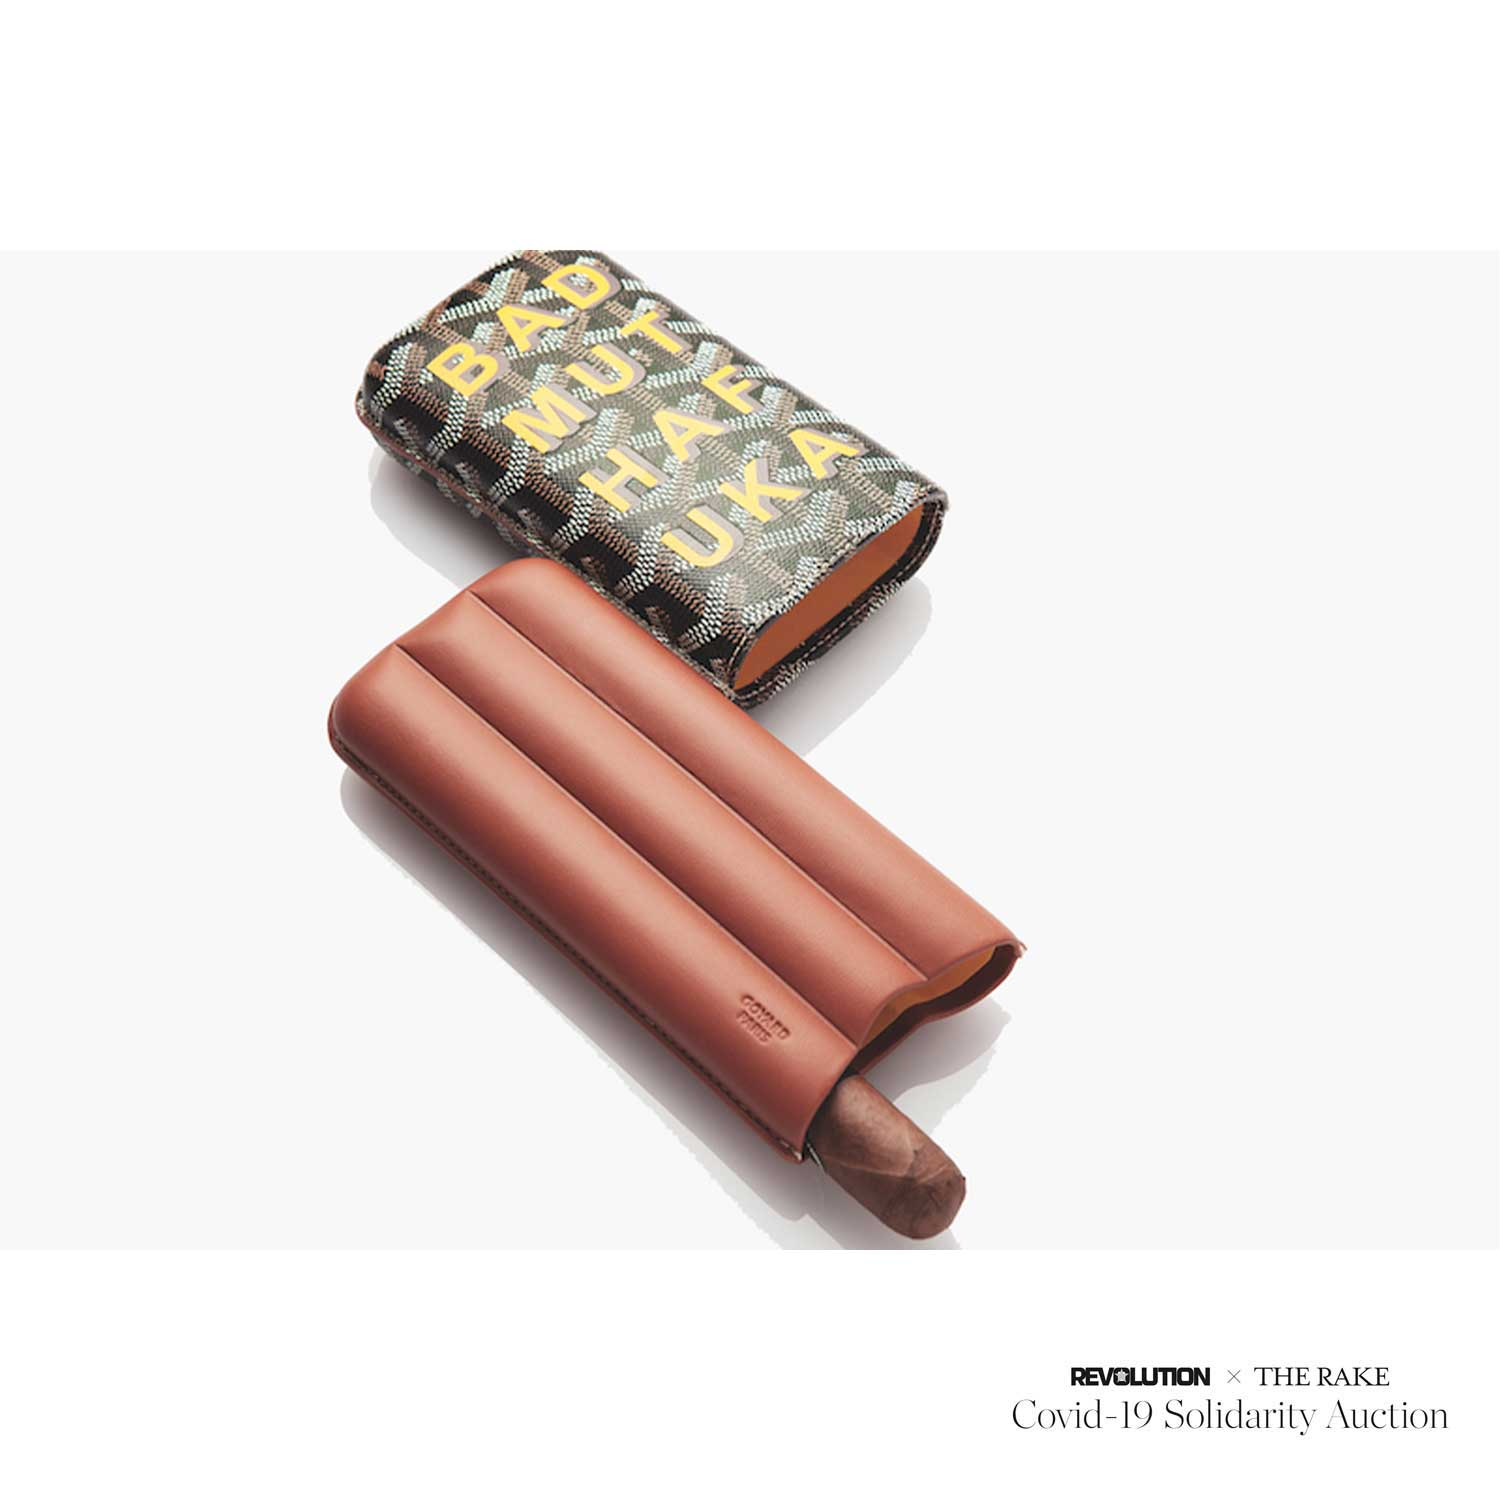 A Goyard three cigar case